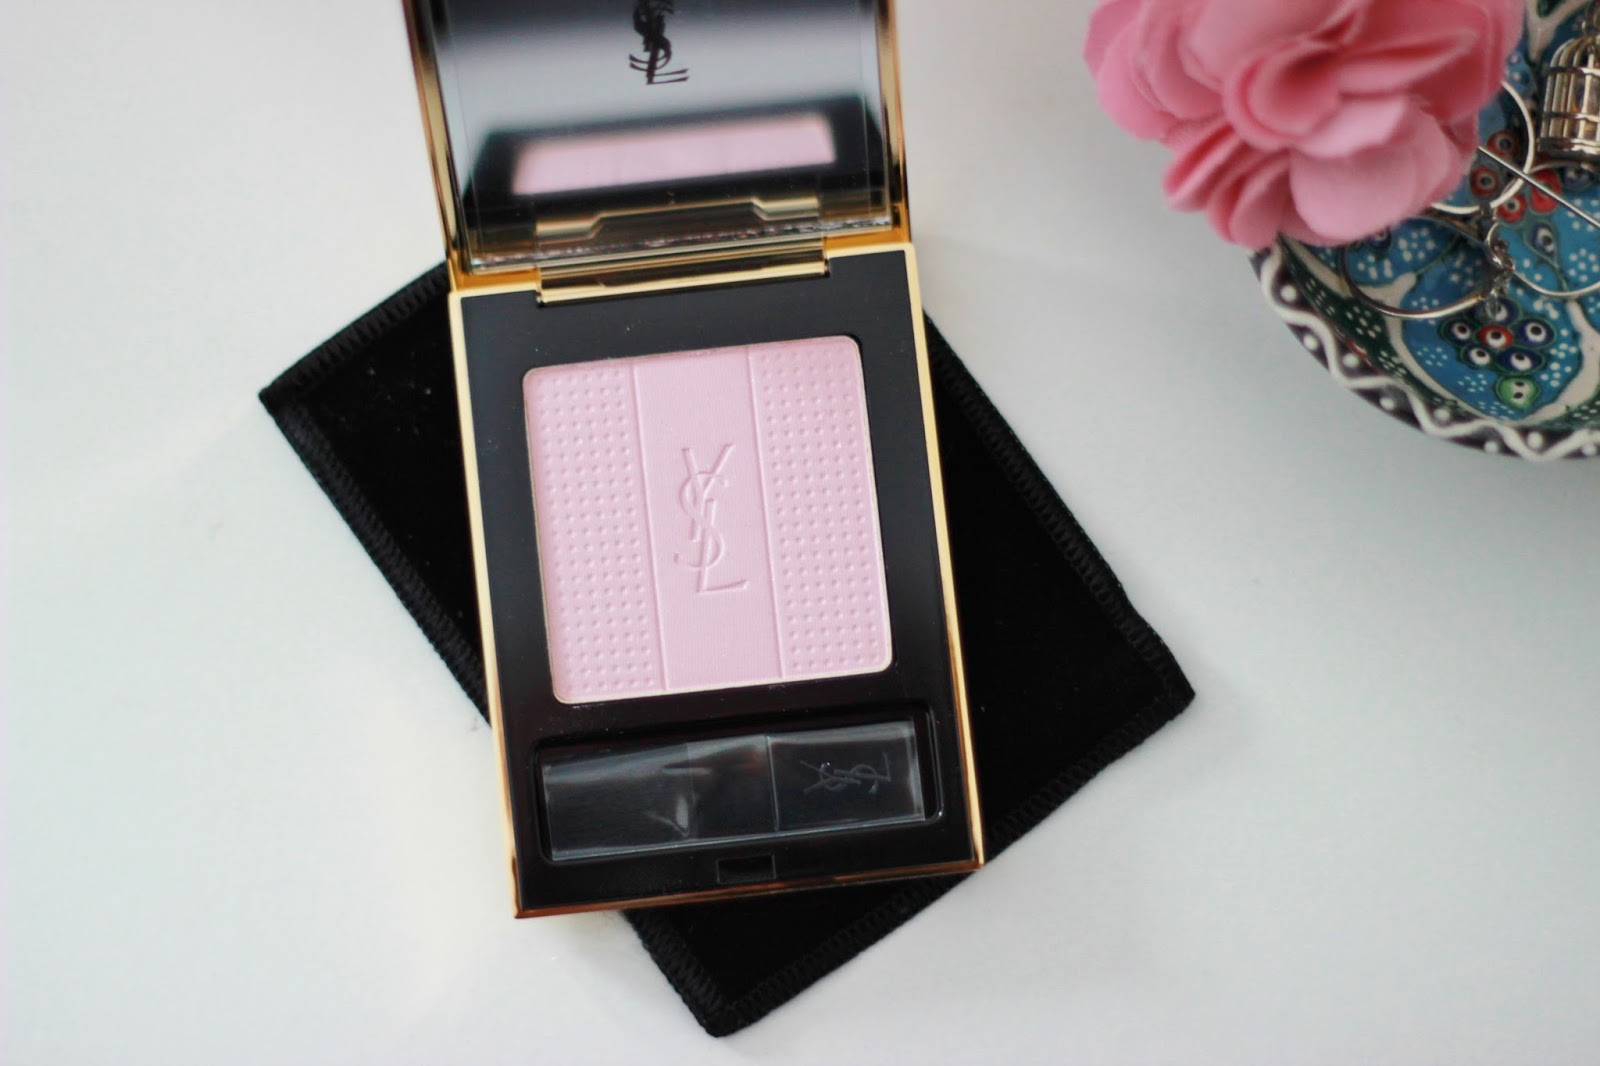 YSL lumiere de jour highlighter spring 2015